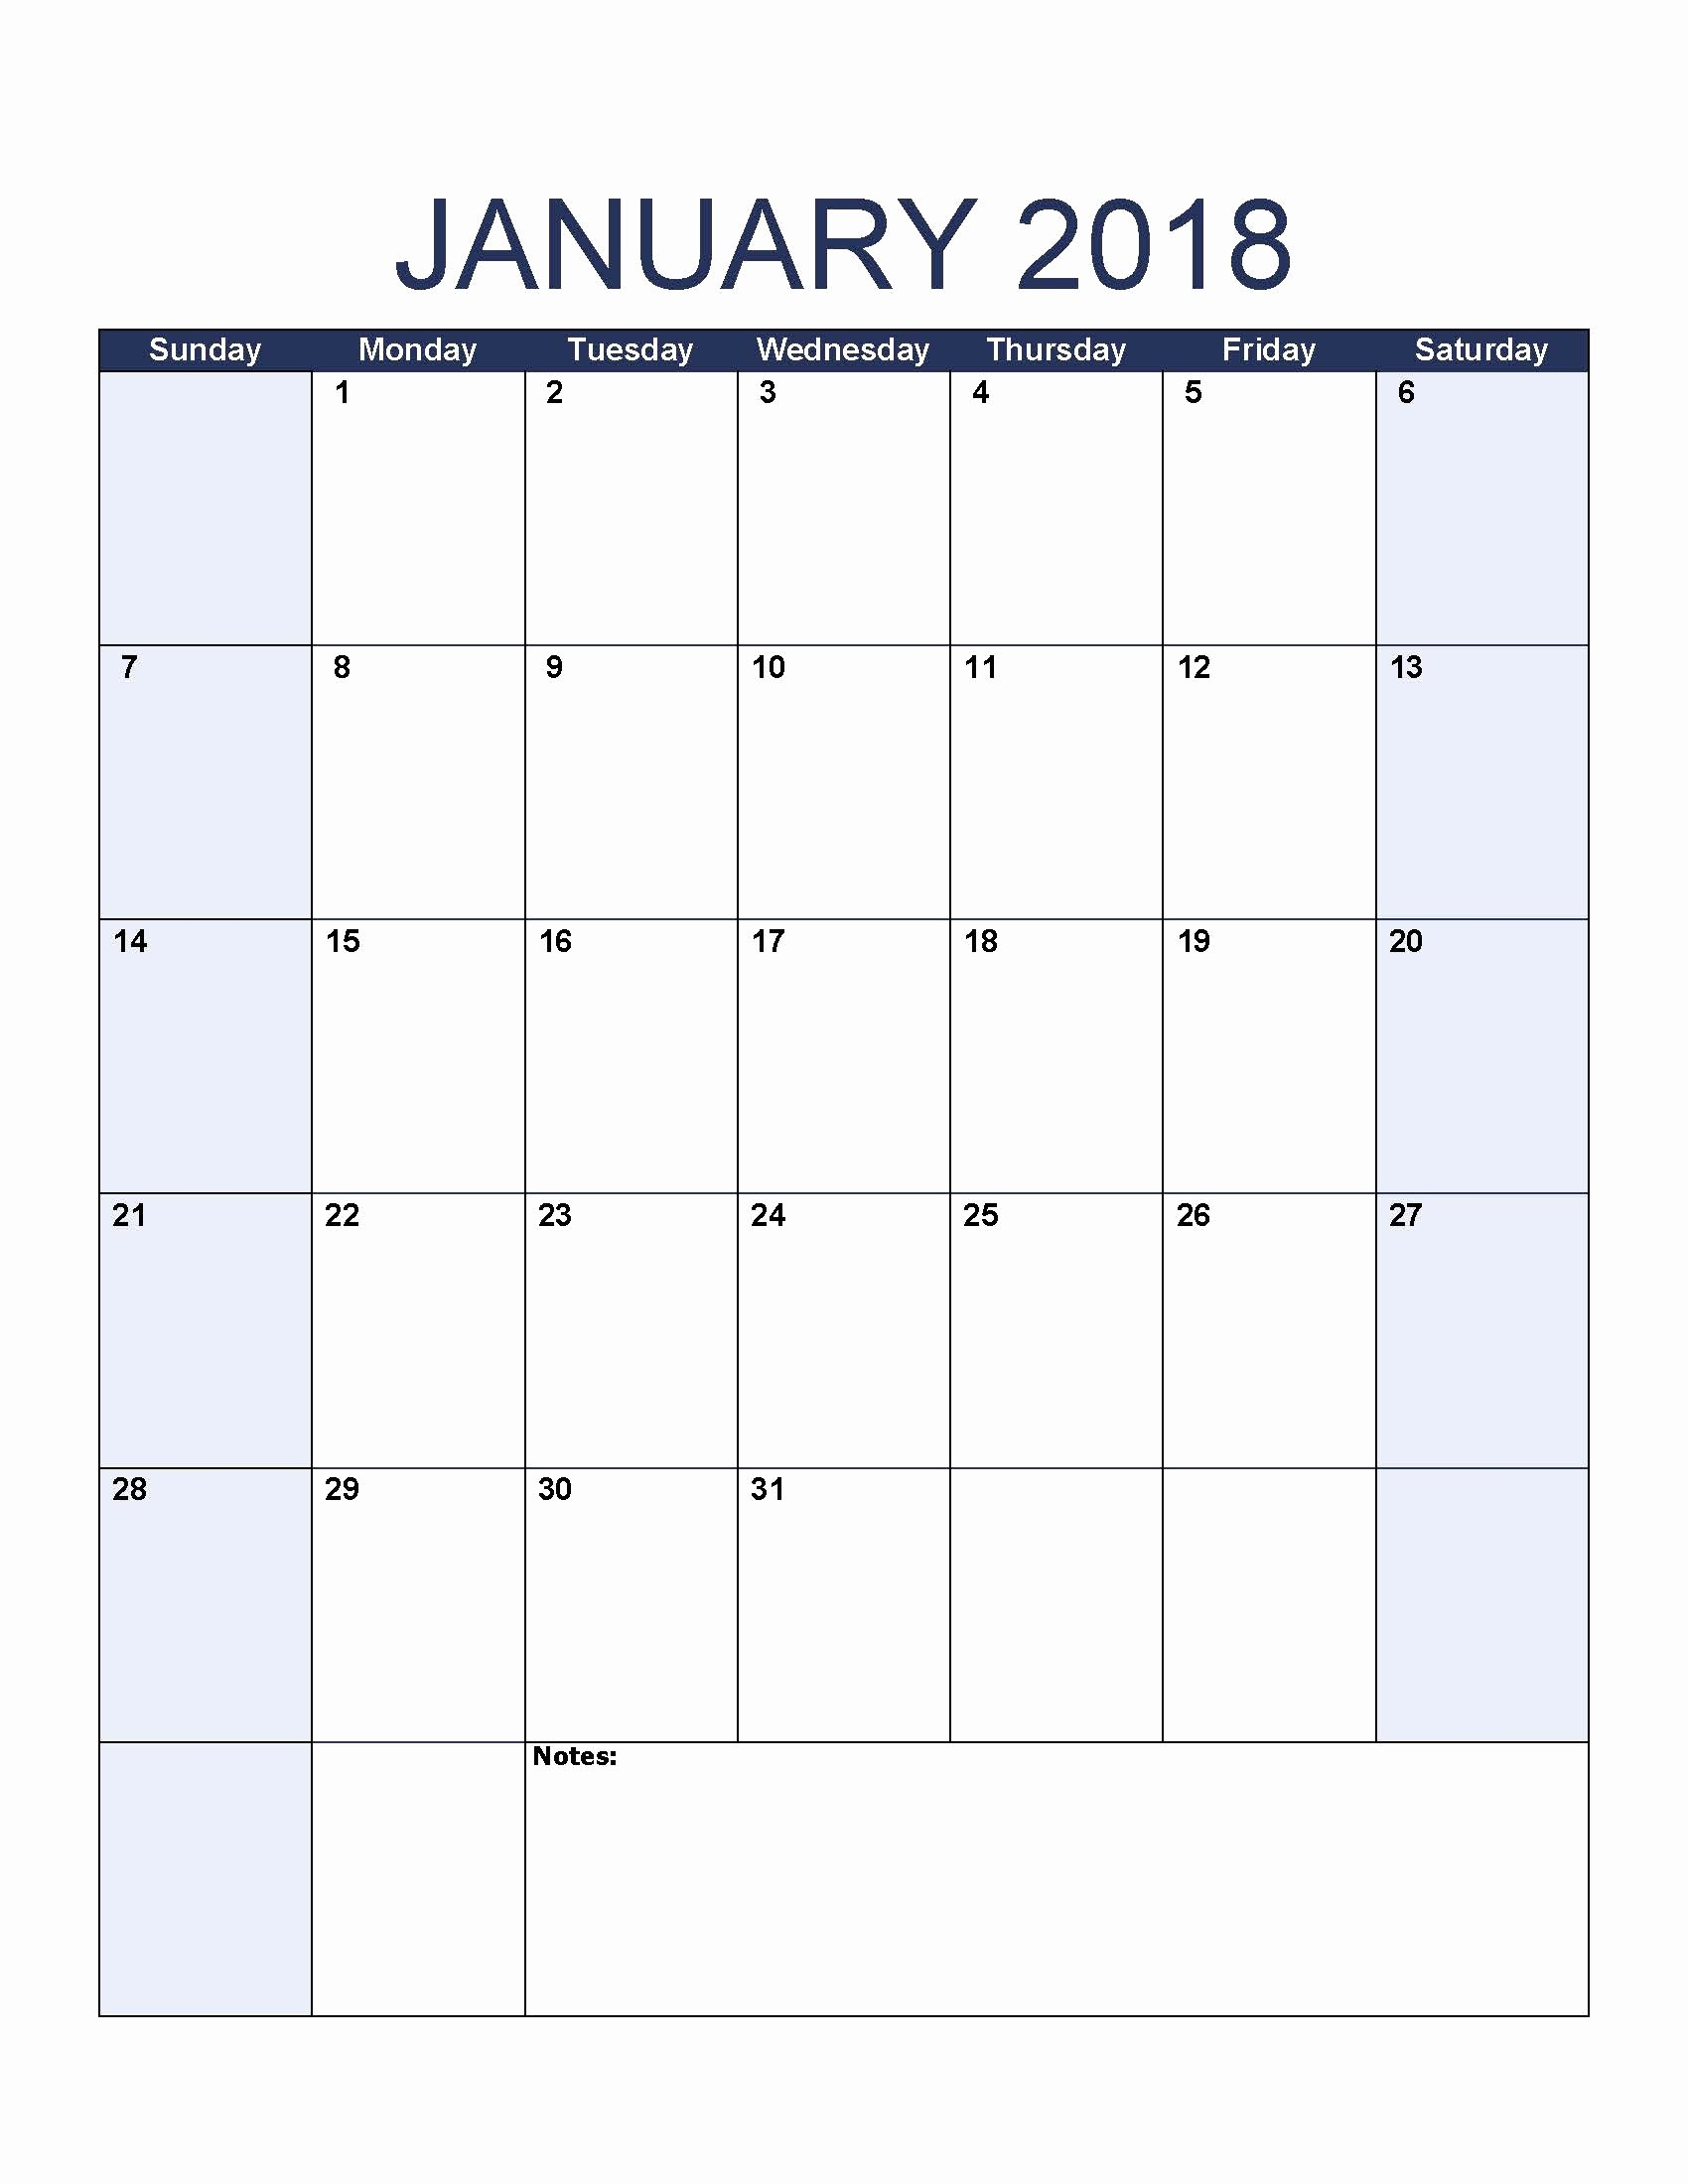 Blank January 2018 Calendar Printable Unique Blank January 2018 Calendar to Print